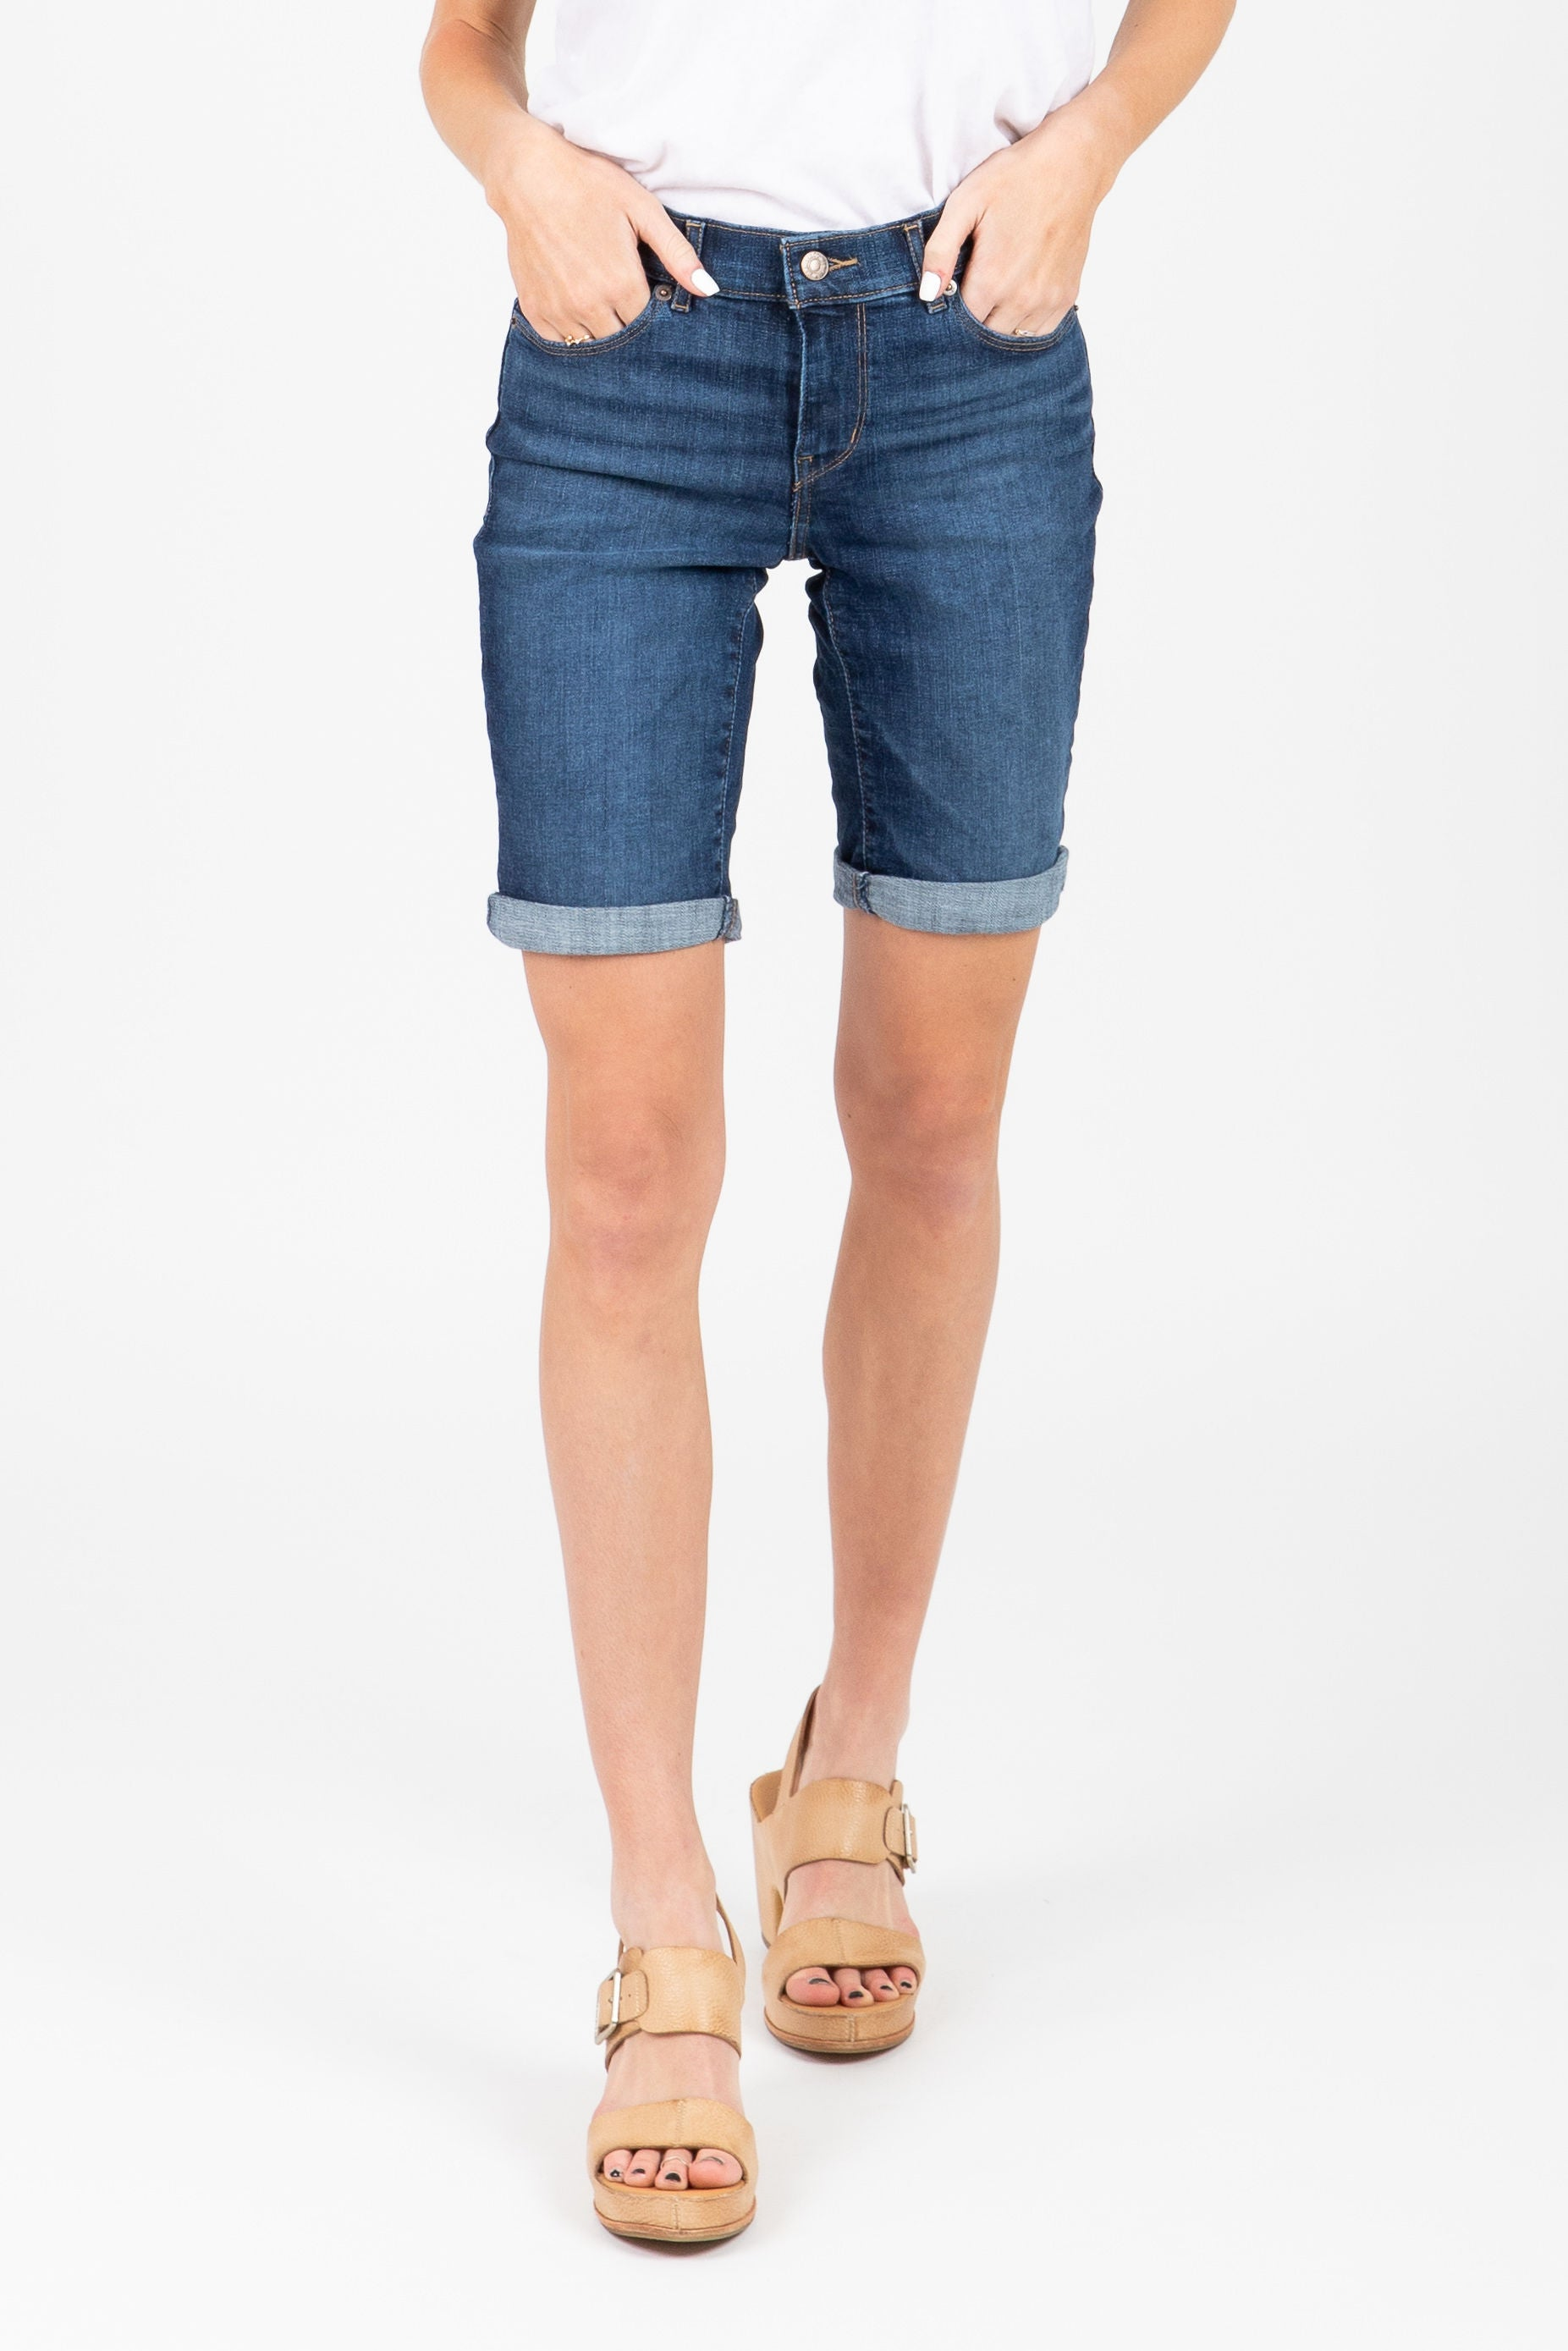 Levi's: Bermuda Shorts in Dark Indigo Moon